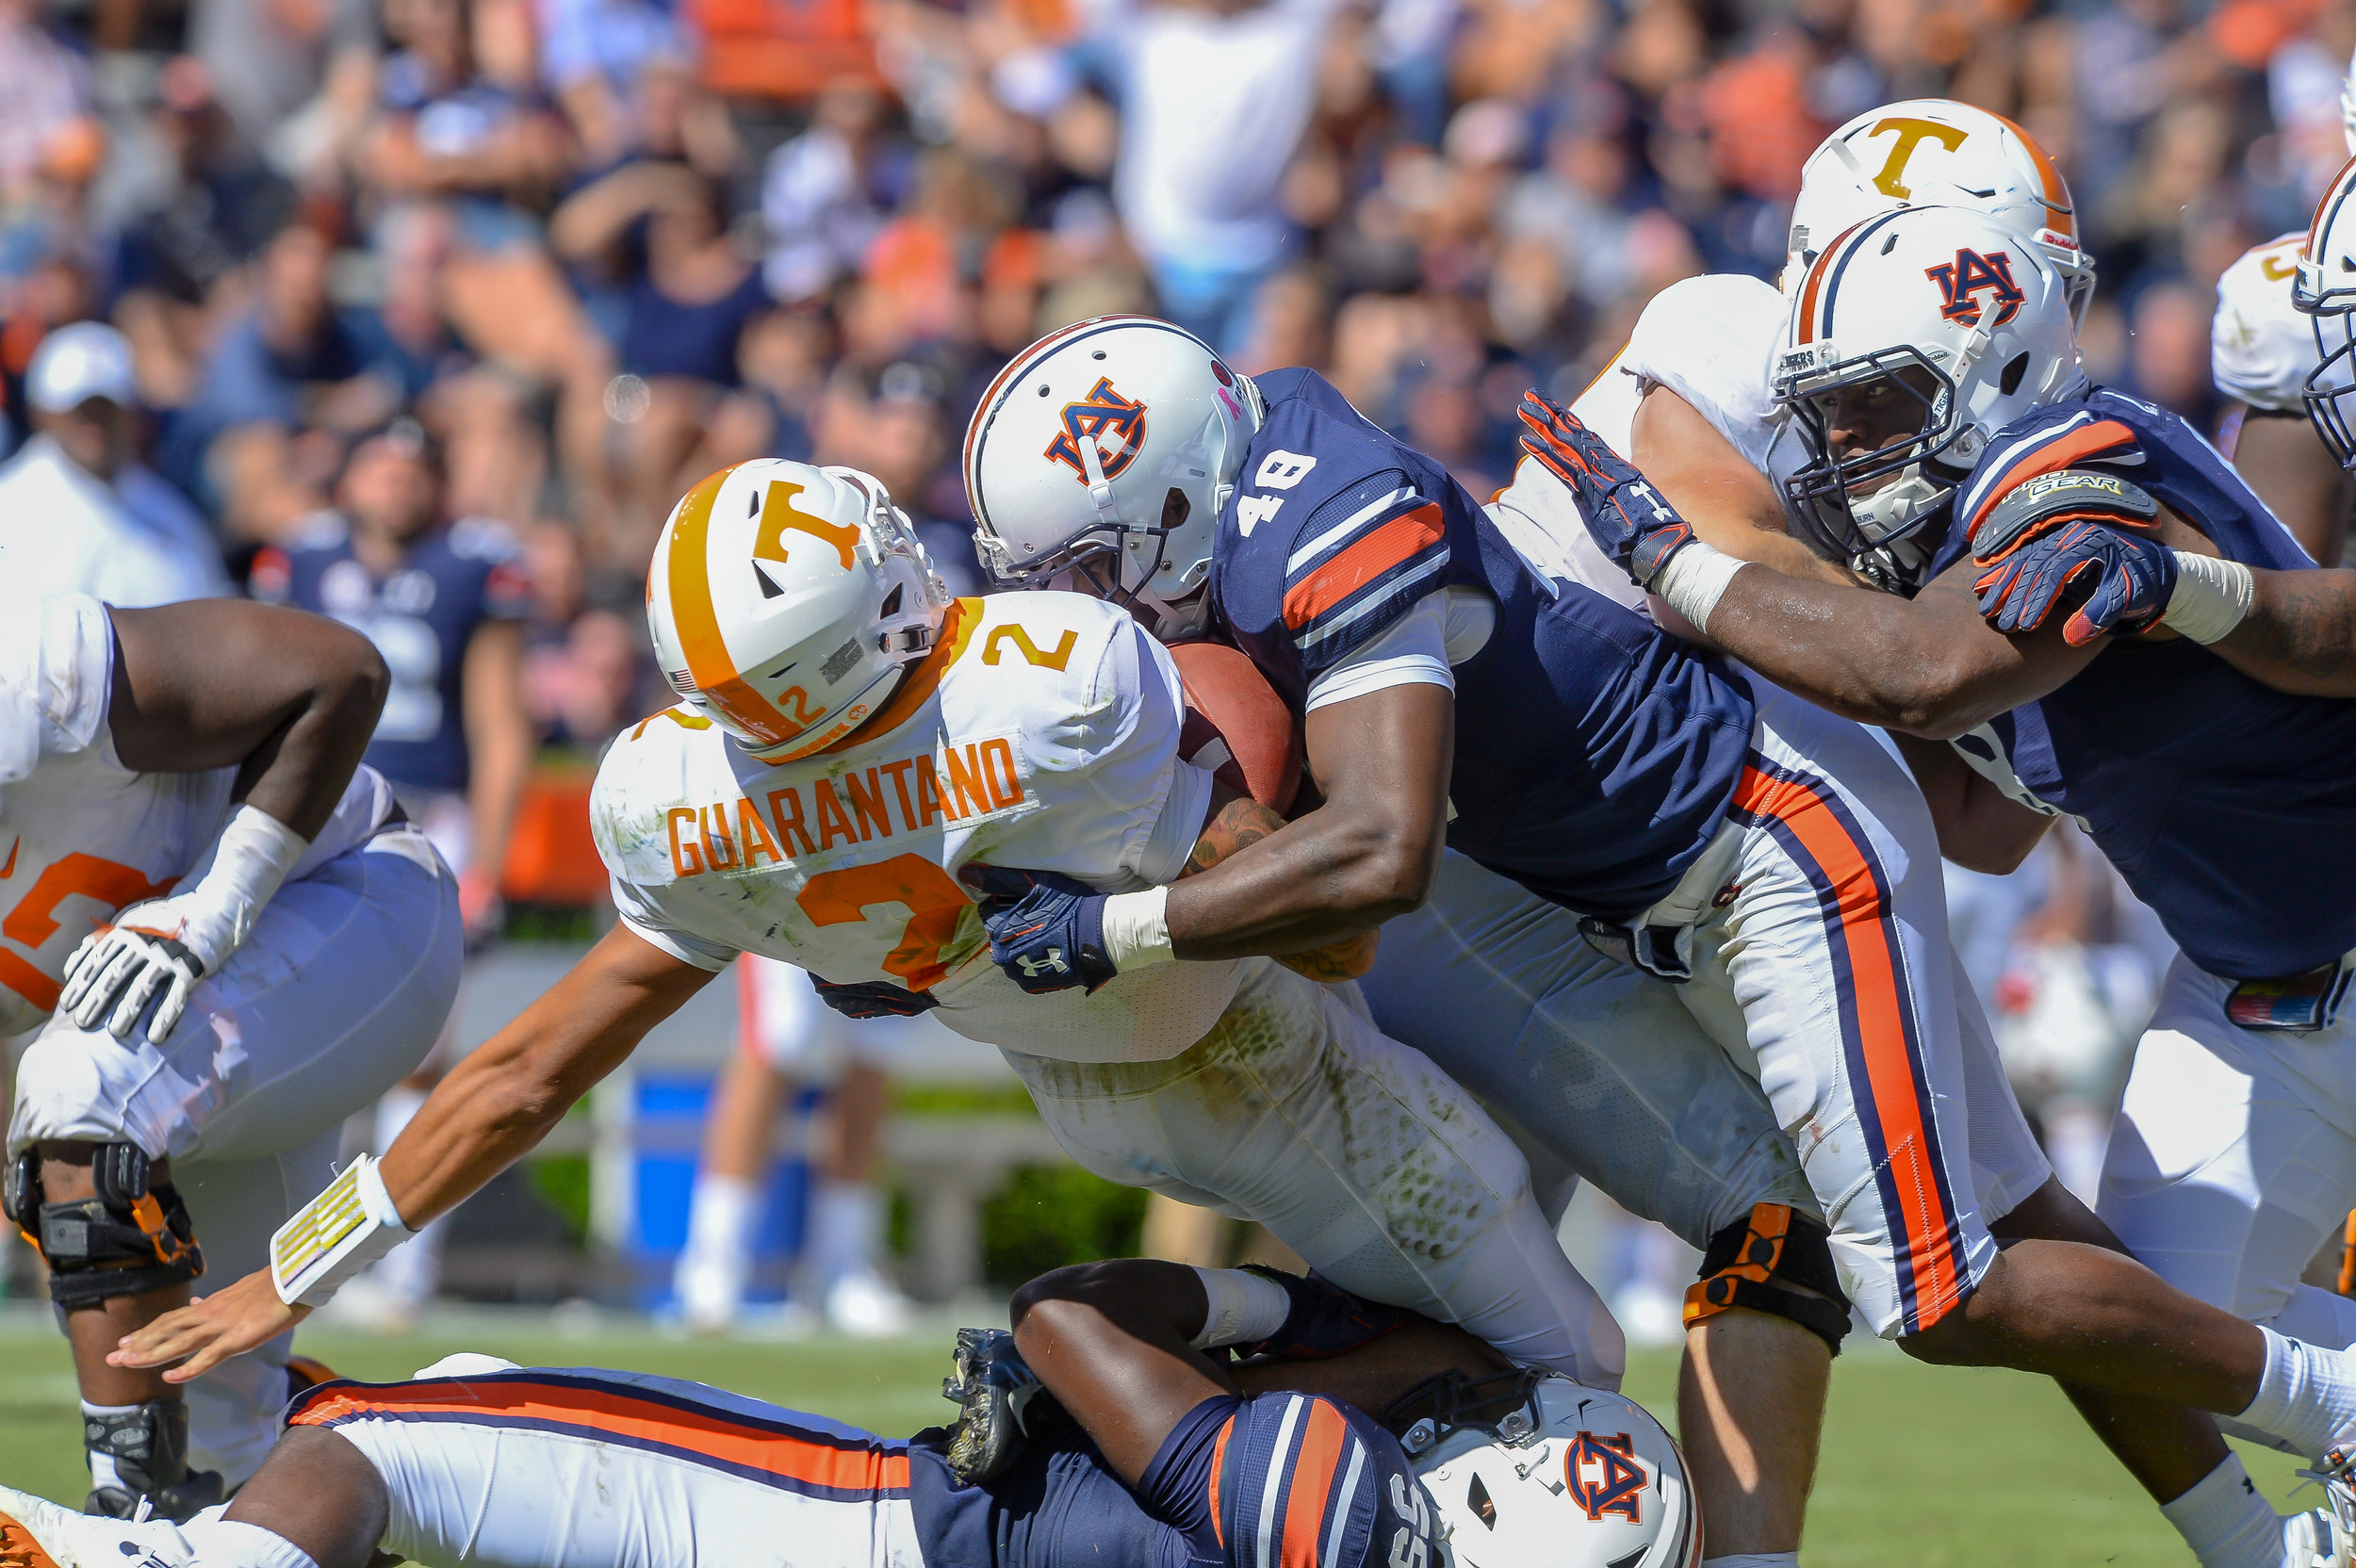 Tennessee Volunteers quarterback Jarrett Guarantano (2) is brought down by Auburn Tigers linebacker T.D. Moultry (55) and linebacker Montavious Atkinson (48) during the second half of Saturday's game, at Jordan-Hare Stadium in Auburn, AL. Daily Mountain Eagle -  Jeff Johnsey